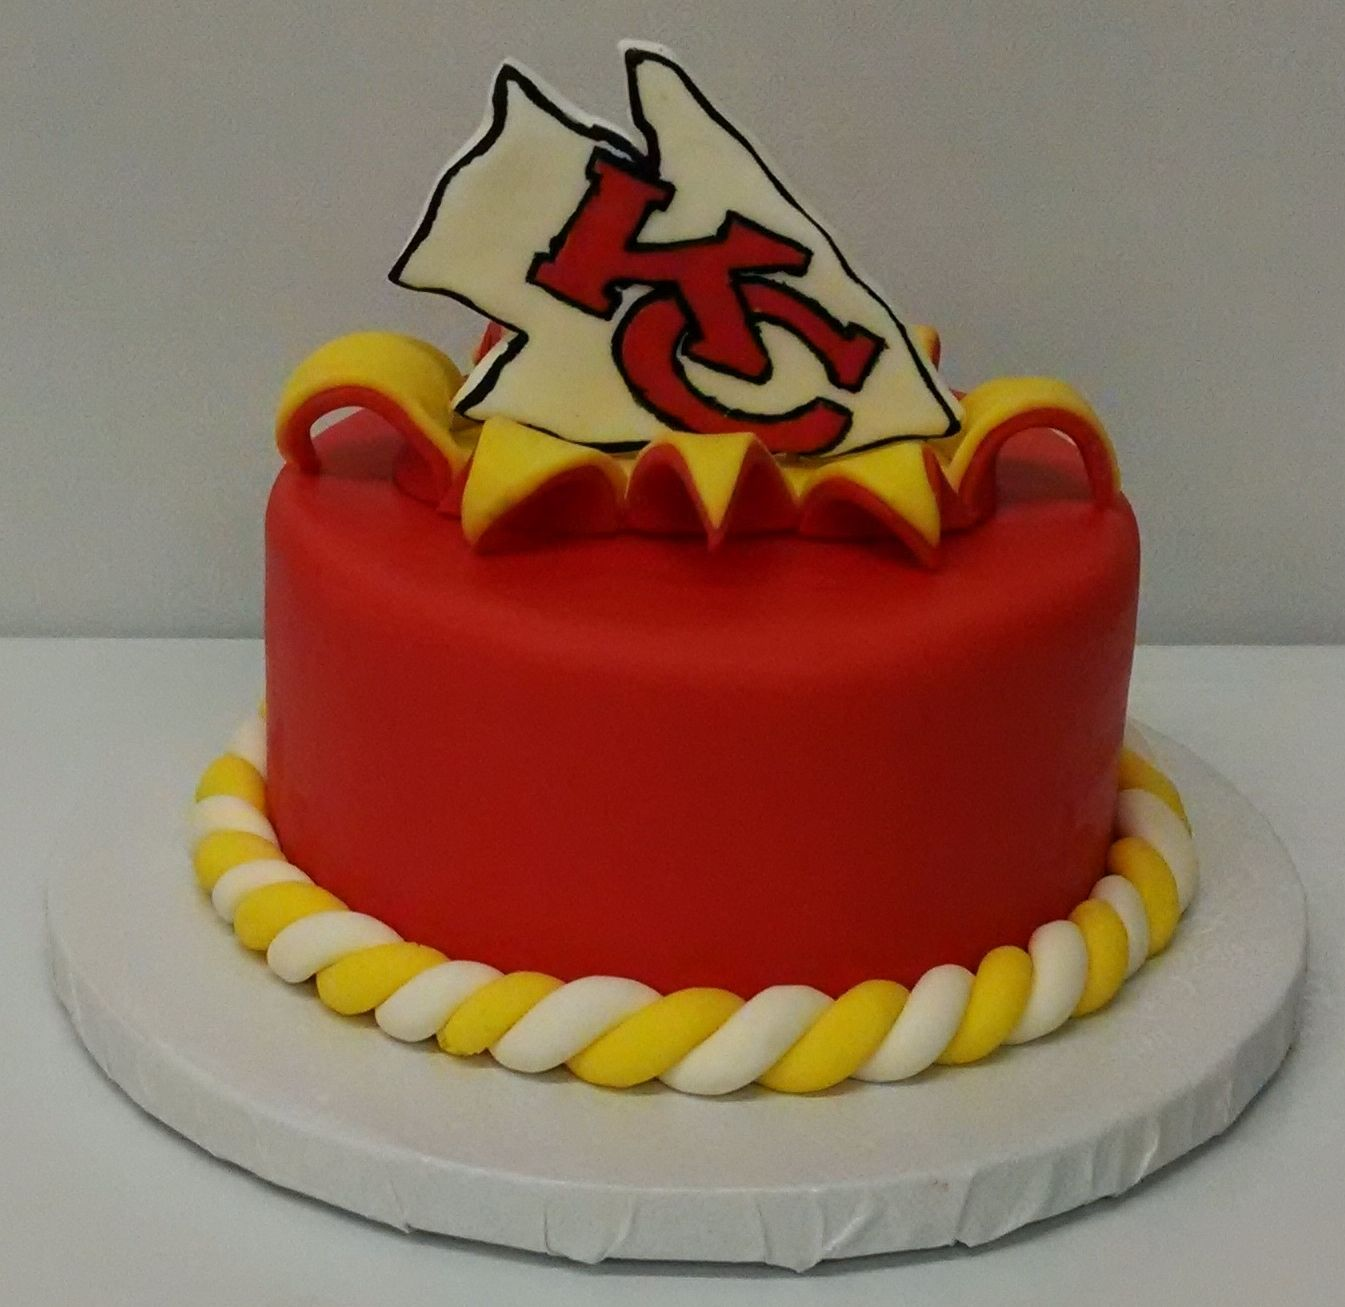 Pleasing Kansas City Chiefs Cake 3Womendesserts Com City Cake Funny Birthday Cards Online Overcheapnameinfo